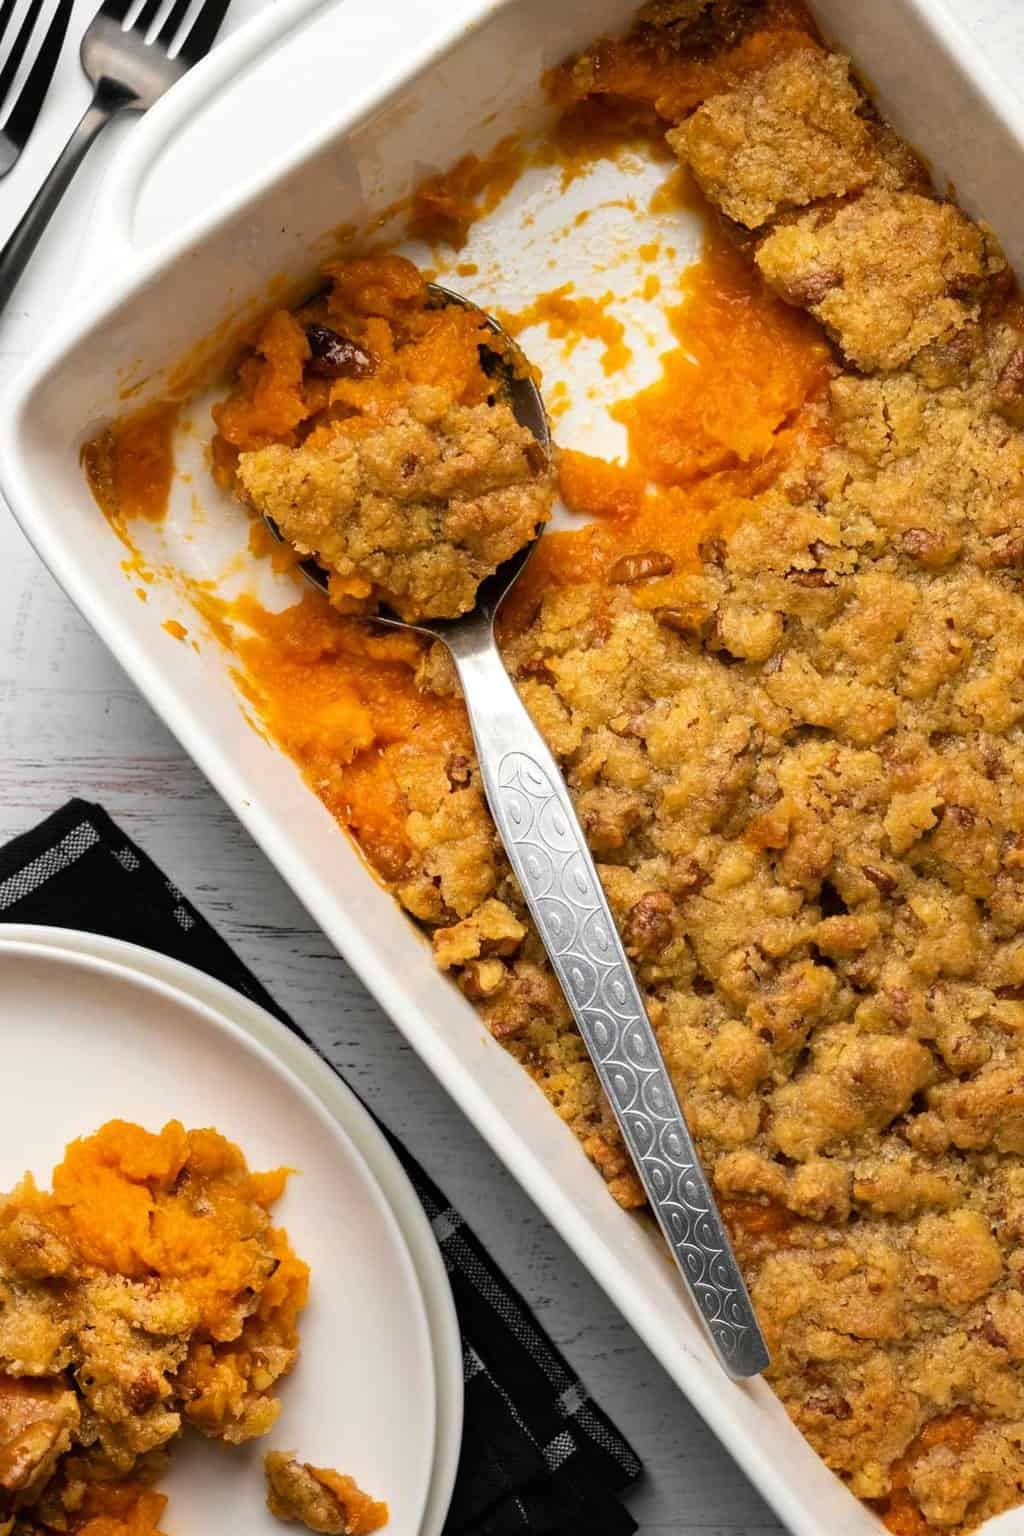 Vegan sweet potato casserole in a white dish with a silver serving spoon.